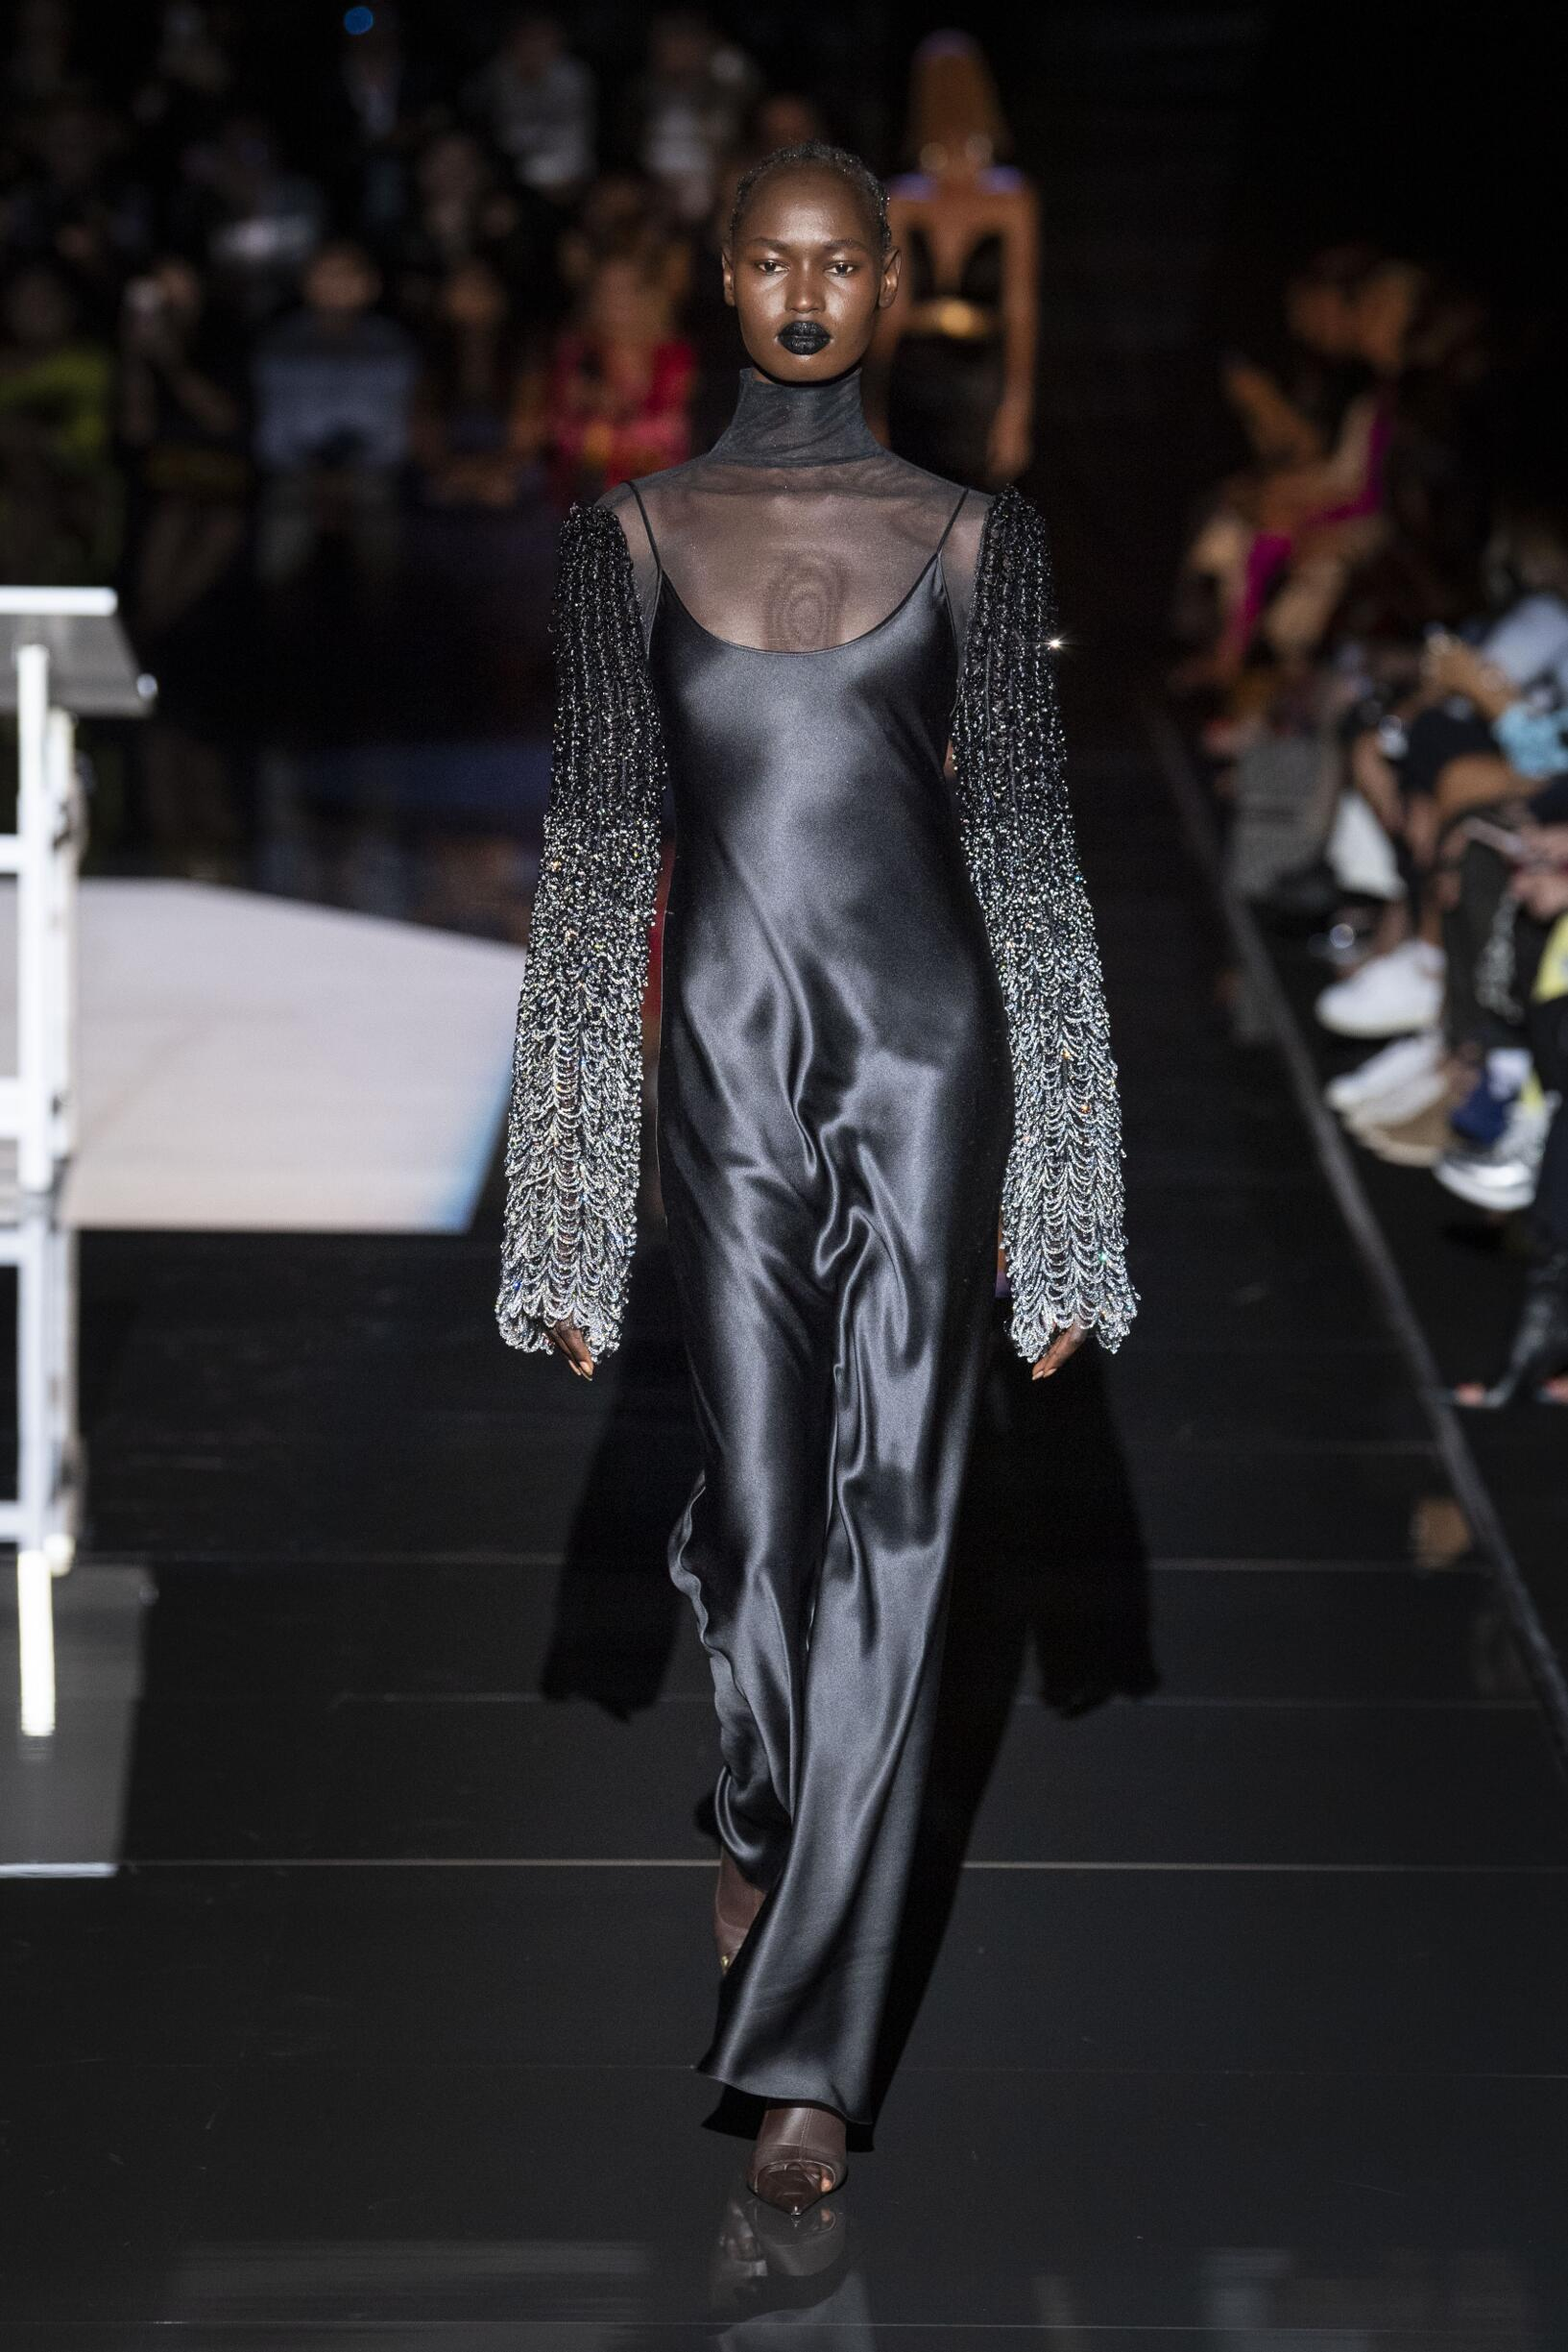 Schiaparelli Haute Couture Women's Collection 2019-20